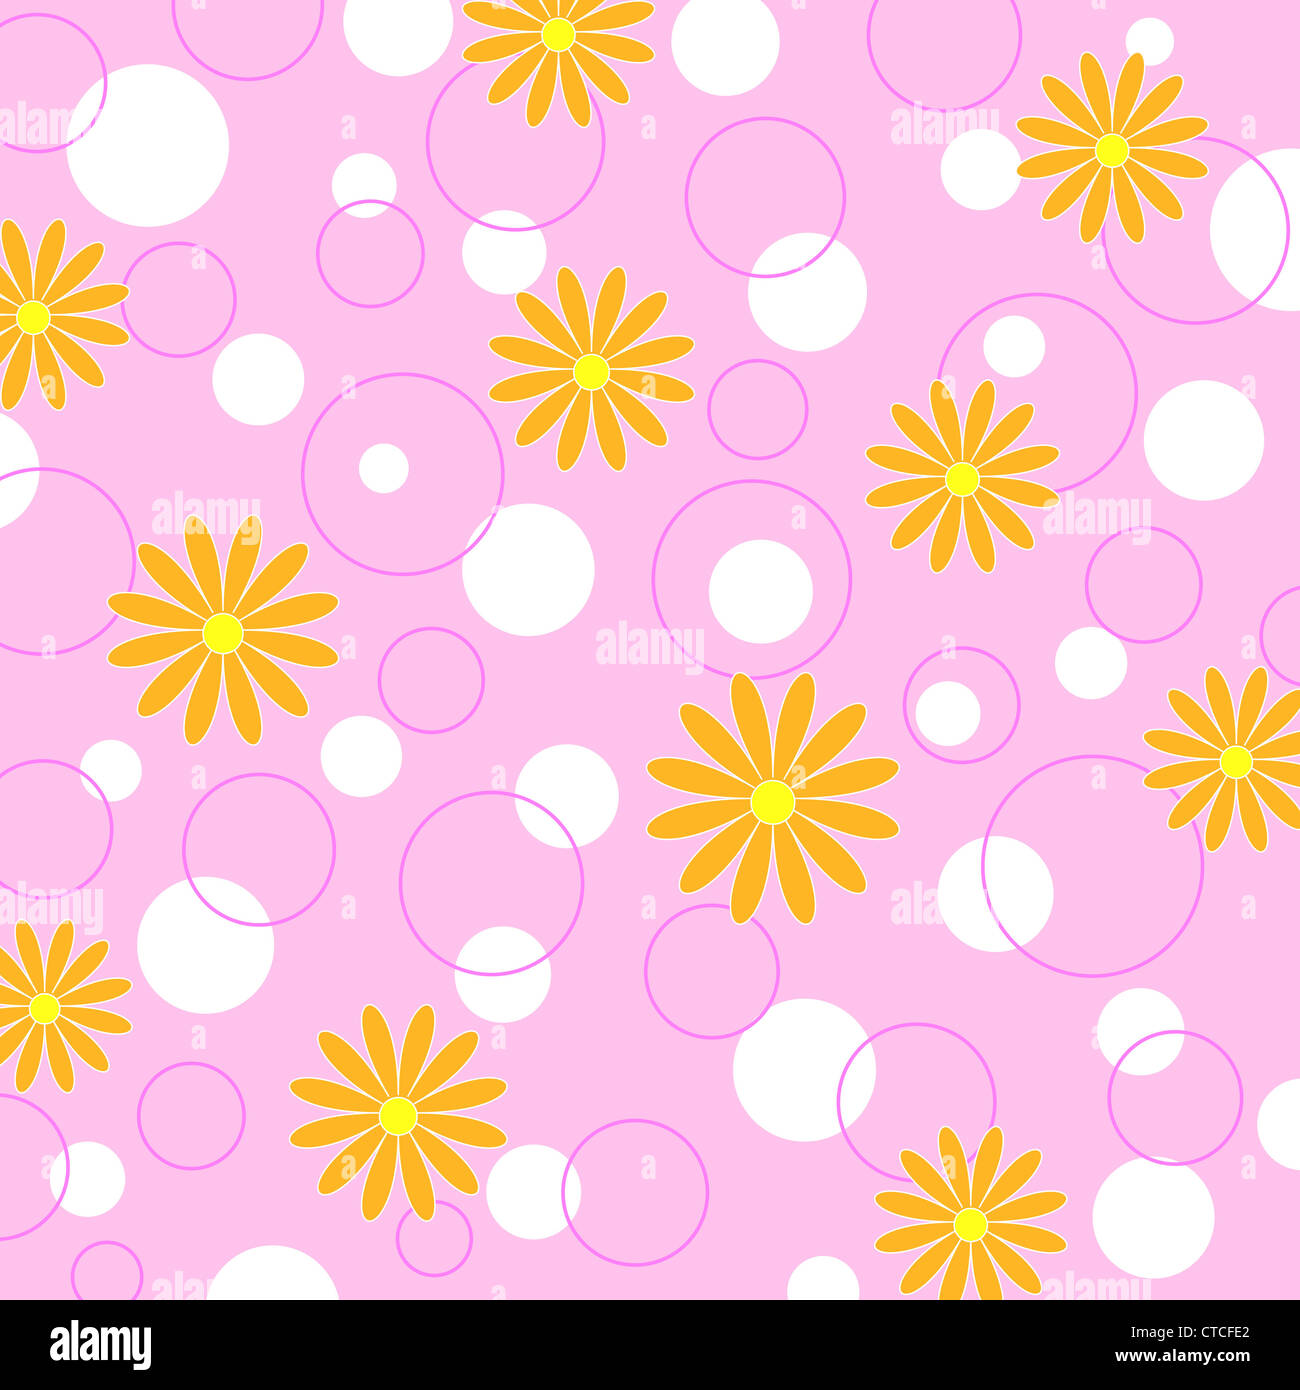 Seamless flowers and circles pattern on pink Stock Photo